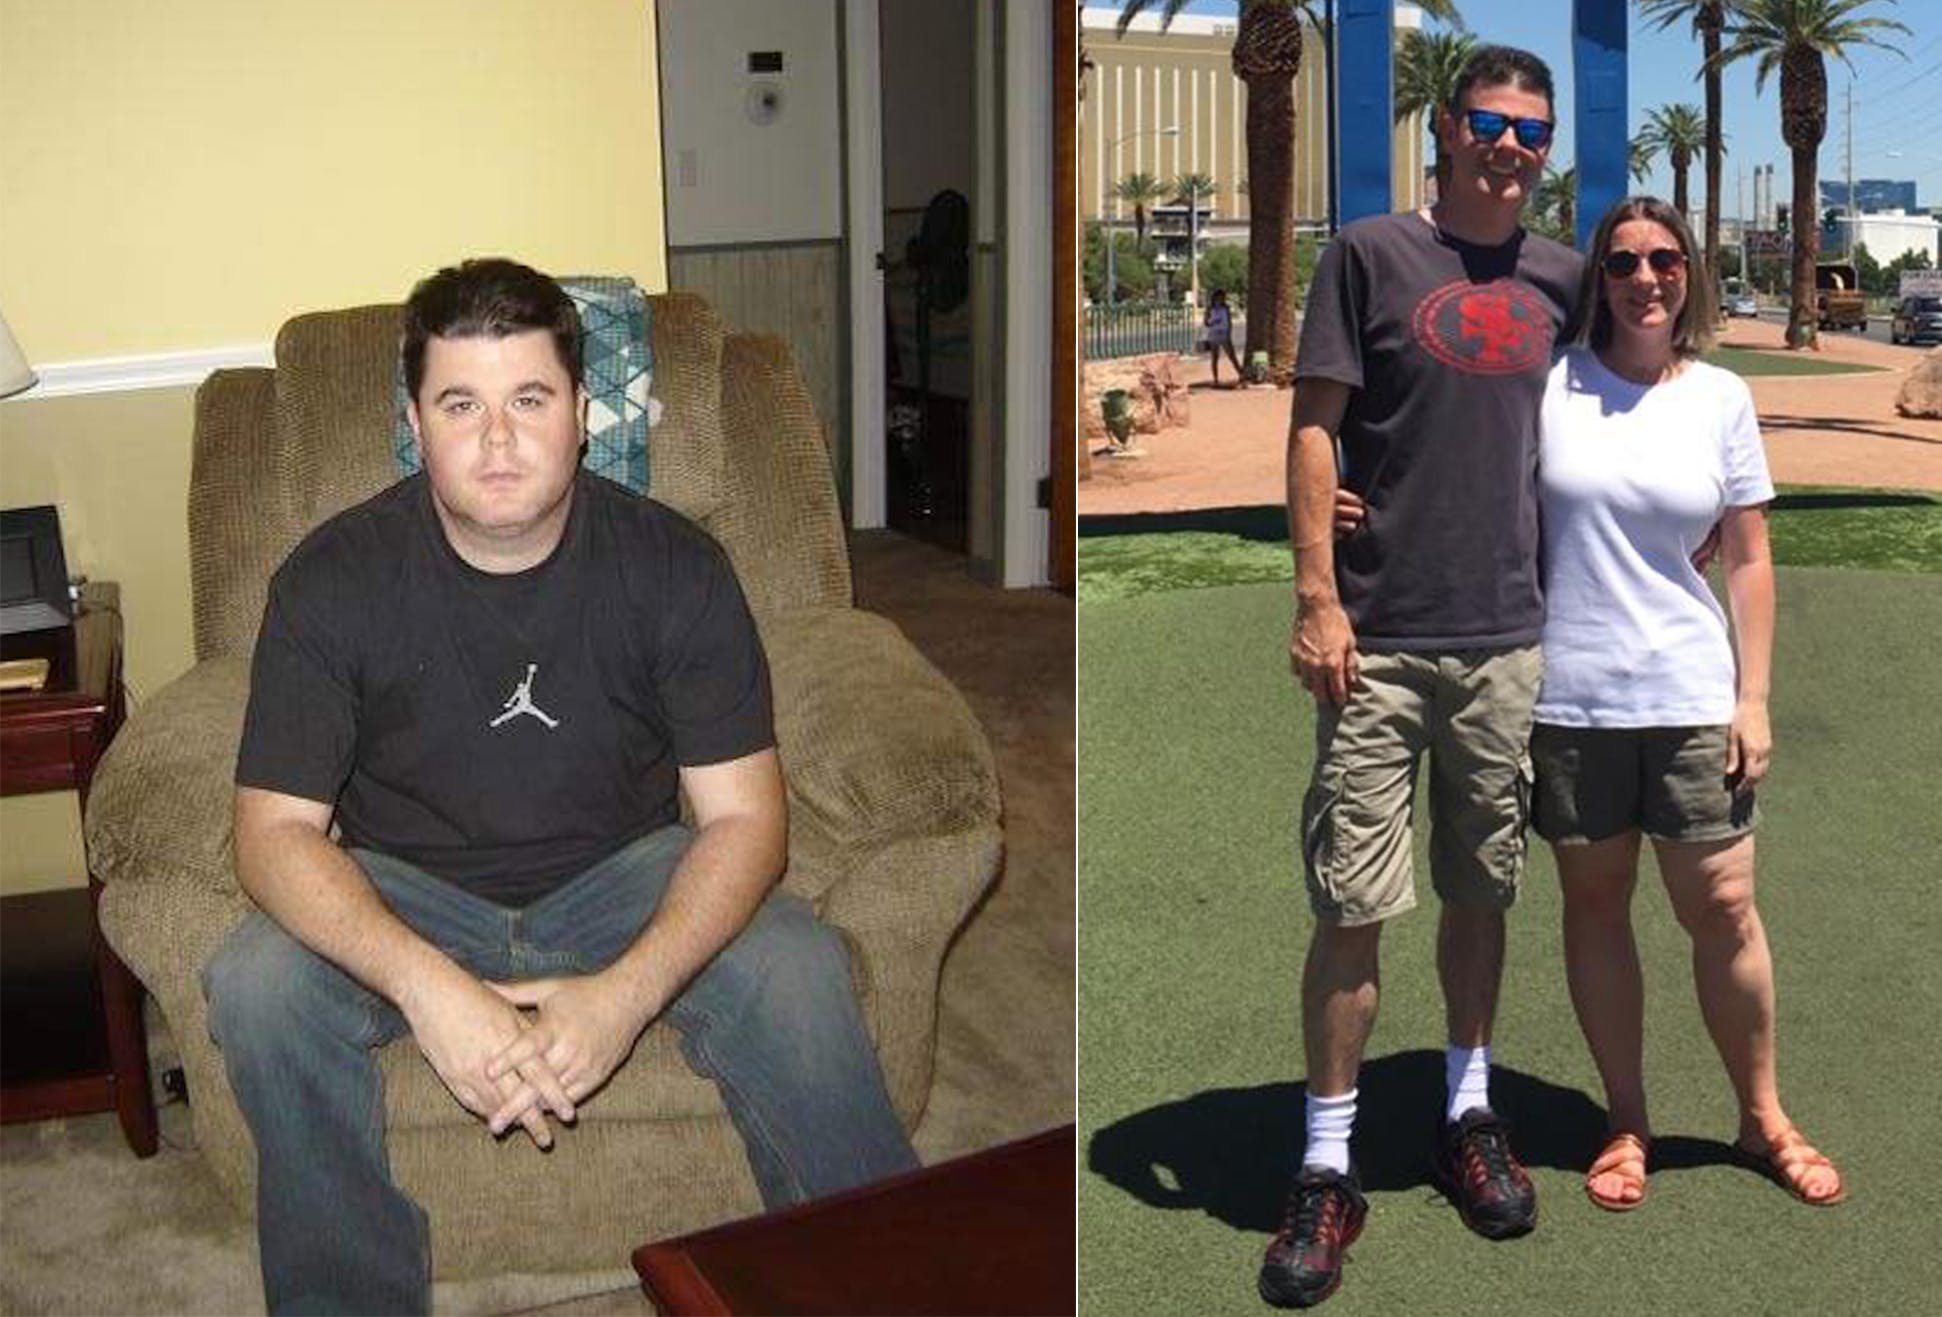 Maintaining a 100-pound weight loss for seven years